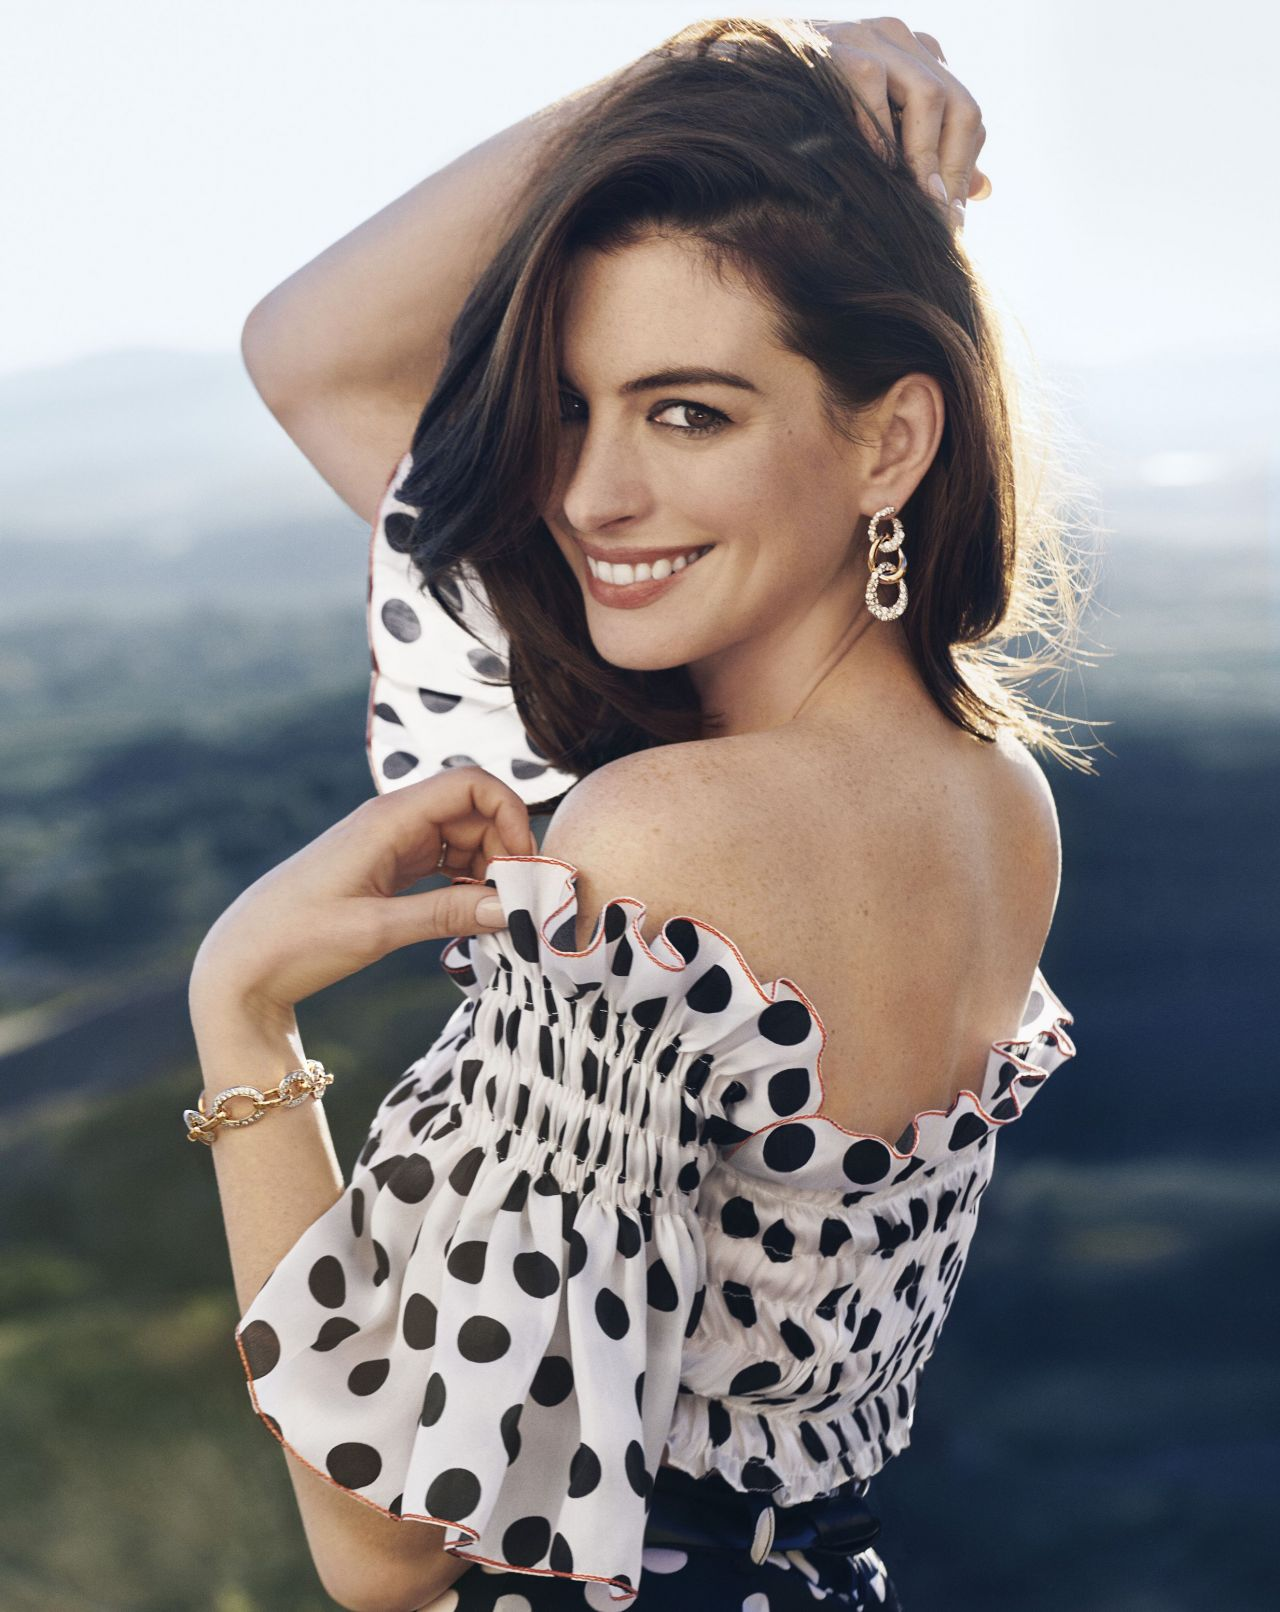 Anne Hathaway - Town & Country February 2019 Anne Hathaway